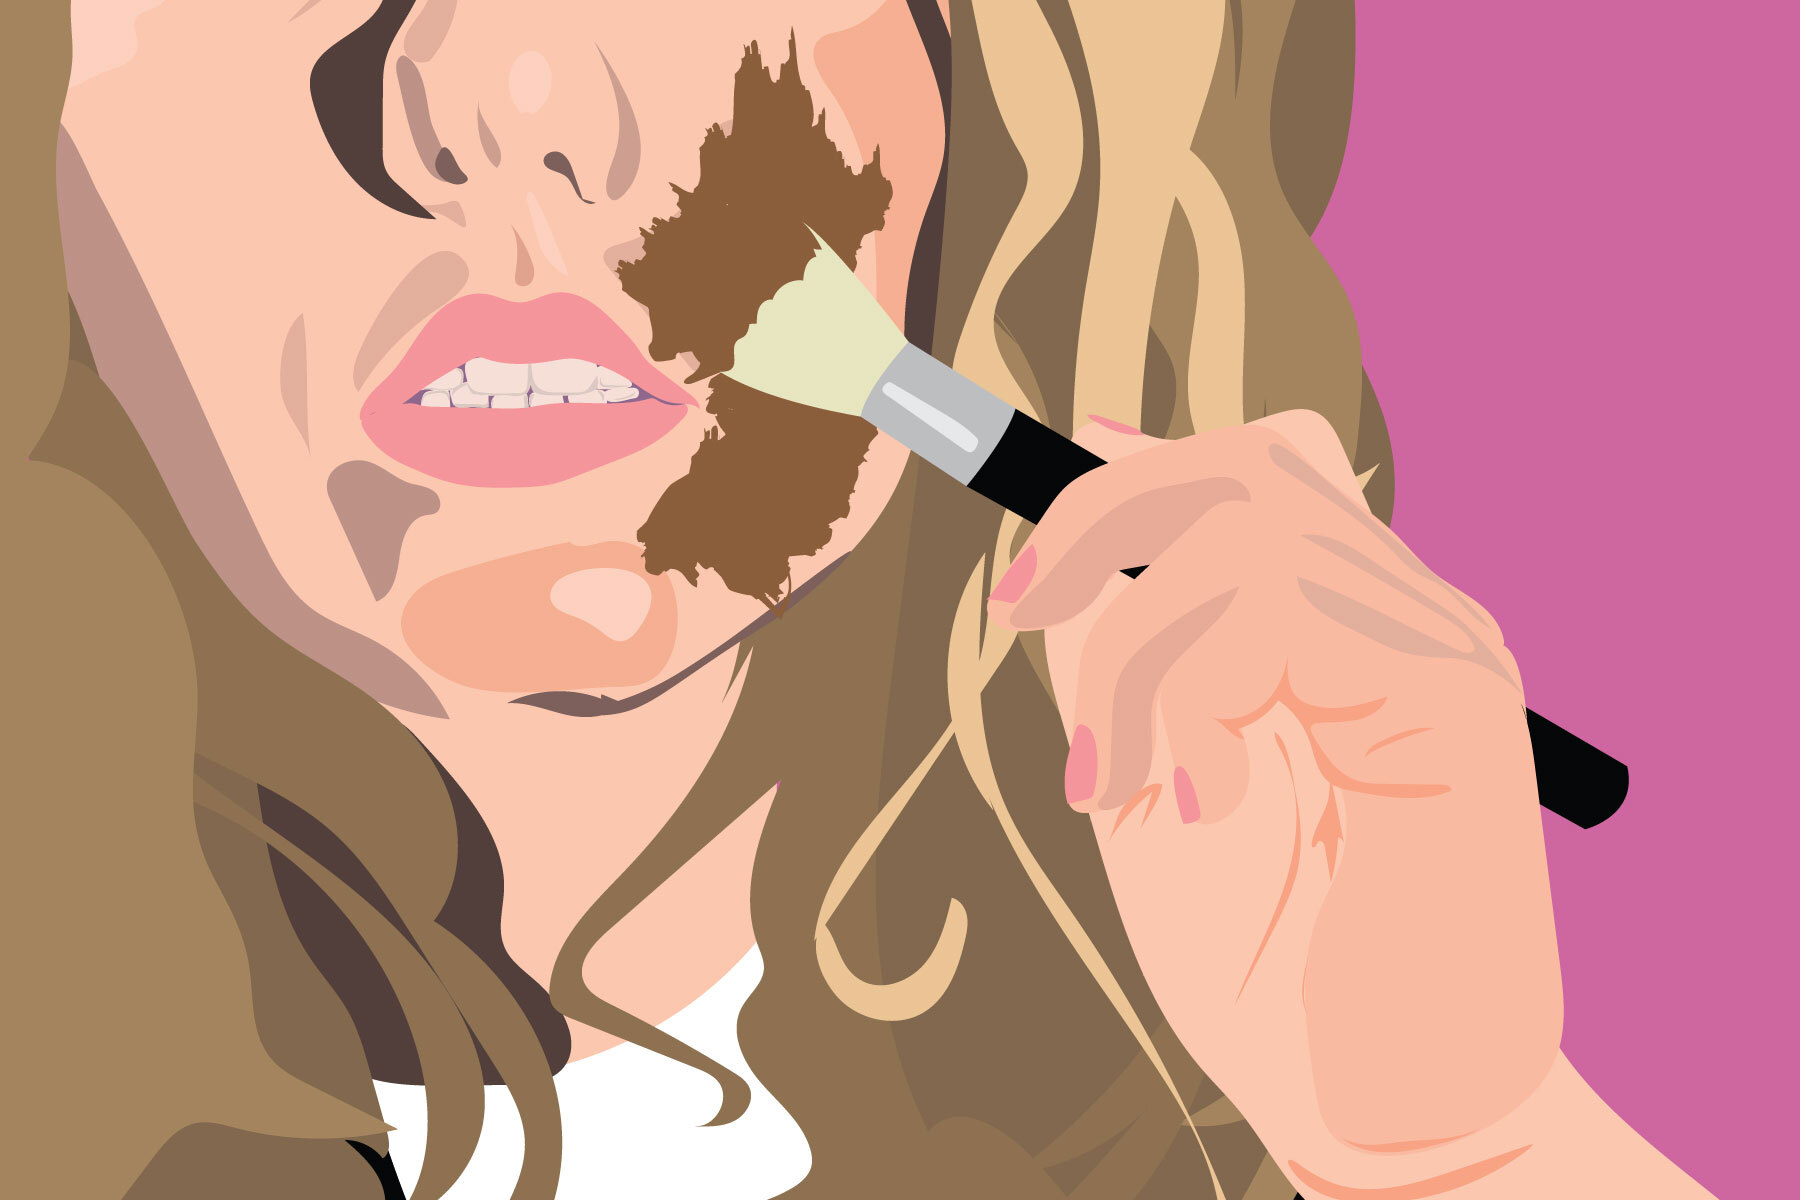 Illustration by Maya Vargas of a white woman painting her face a darker brown, or, blackfishing